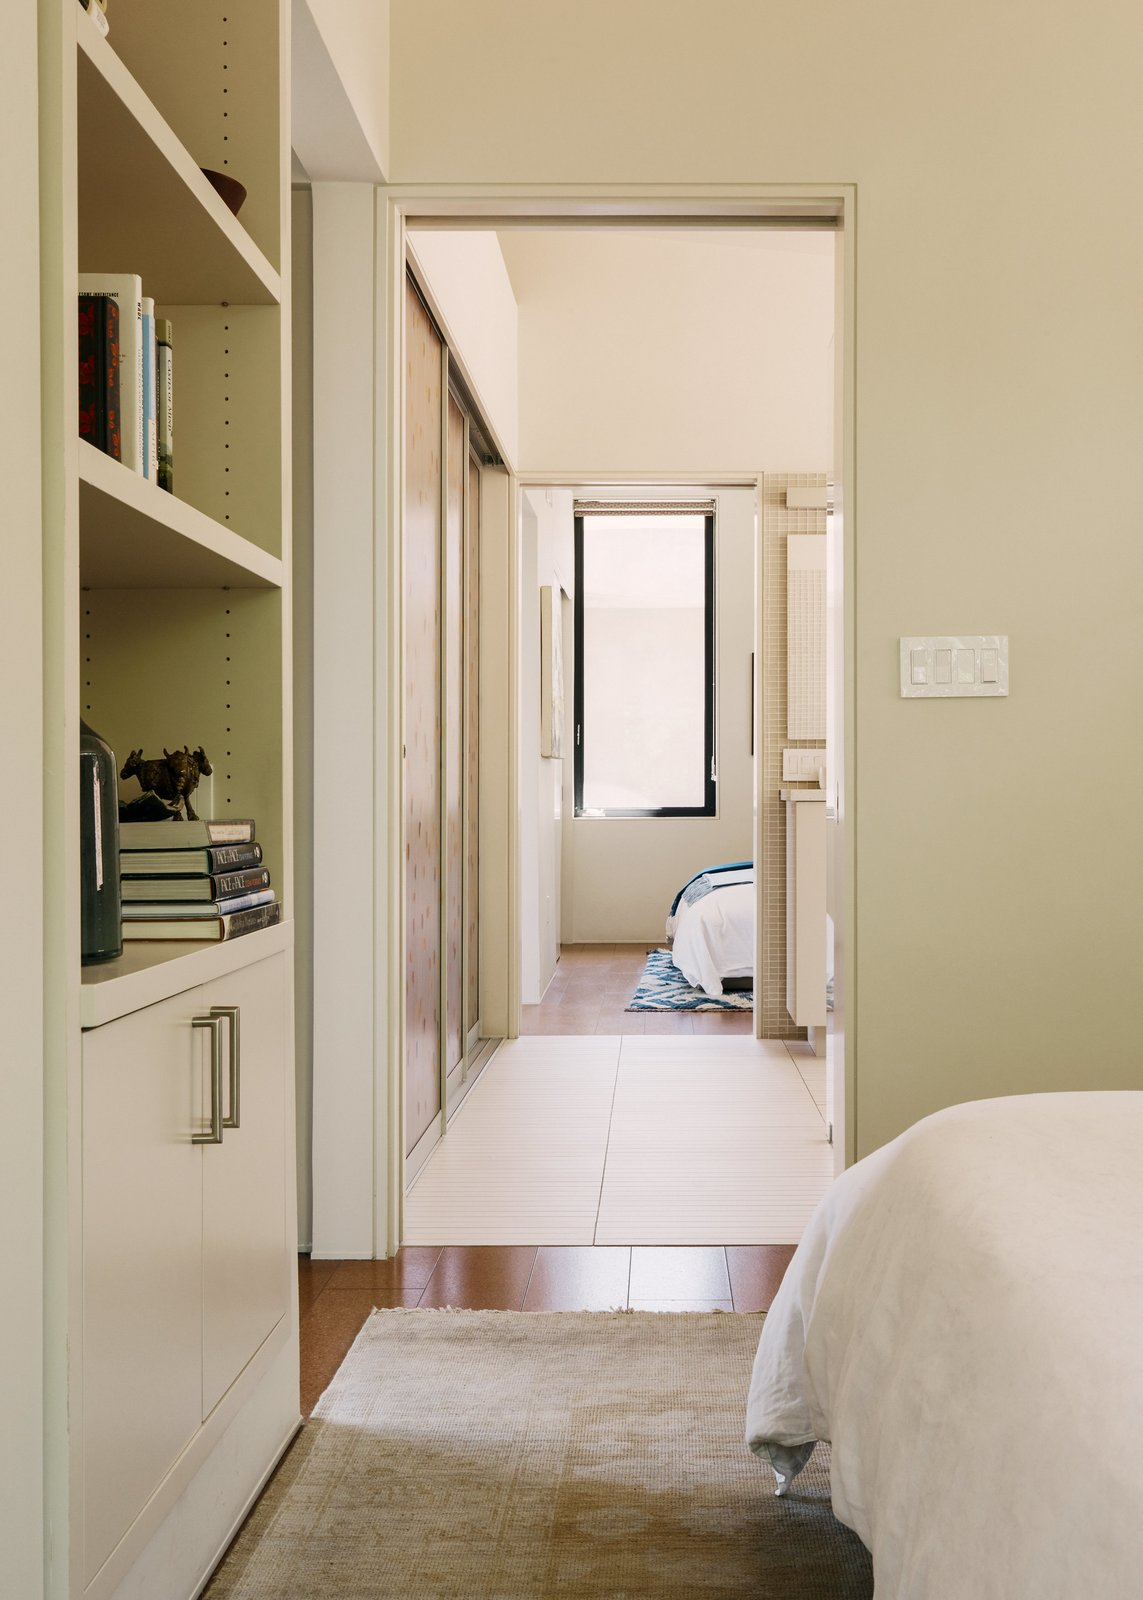 Bedroom, Bed, Shelves, Storage, and Cork Floor In the bathroom, narrow porcelain floor tiles, which require more grout, provide extra traction to prevent slips.  Photo 7 of 9 in A Family Guesthouse Made for Accessibility, Aging in Place—and That View